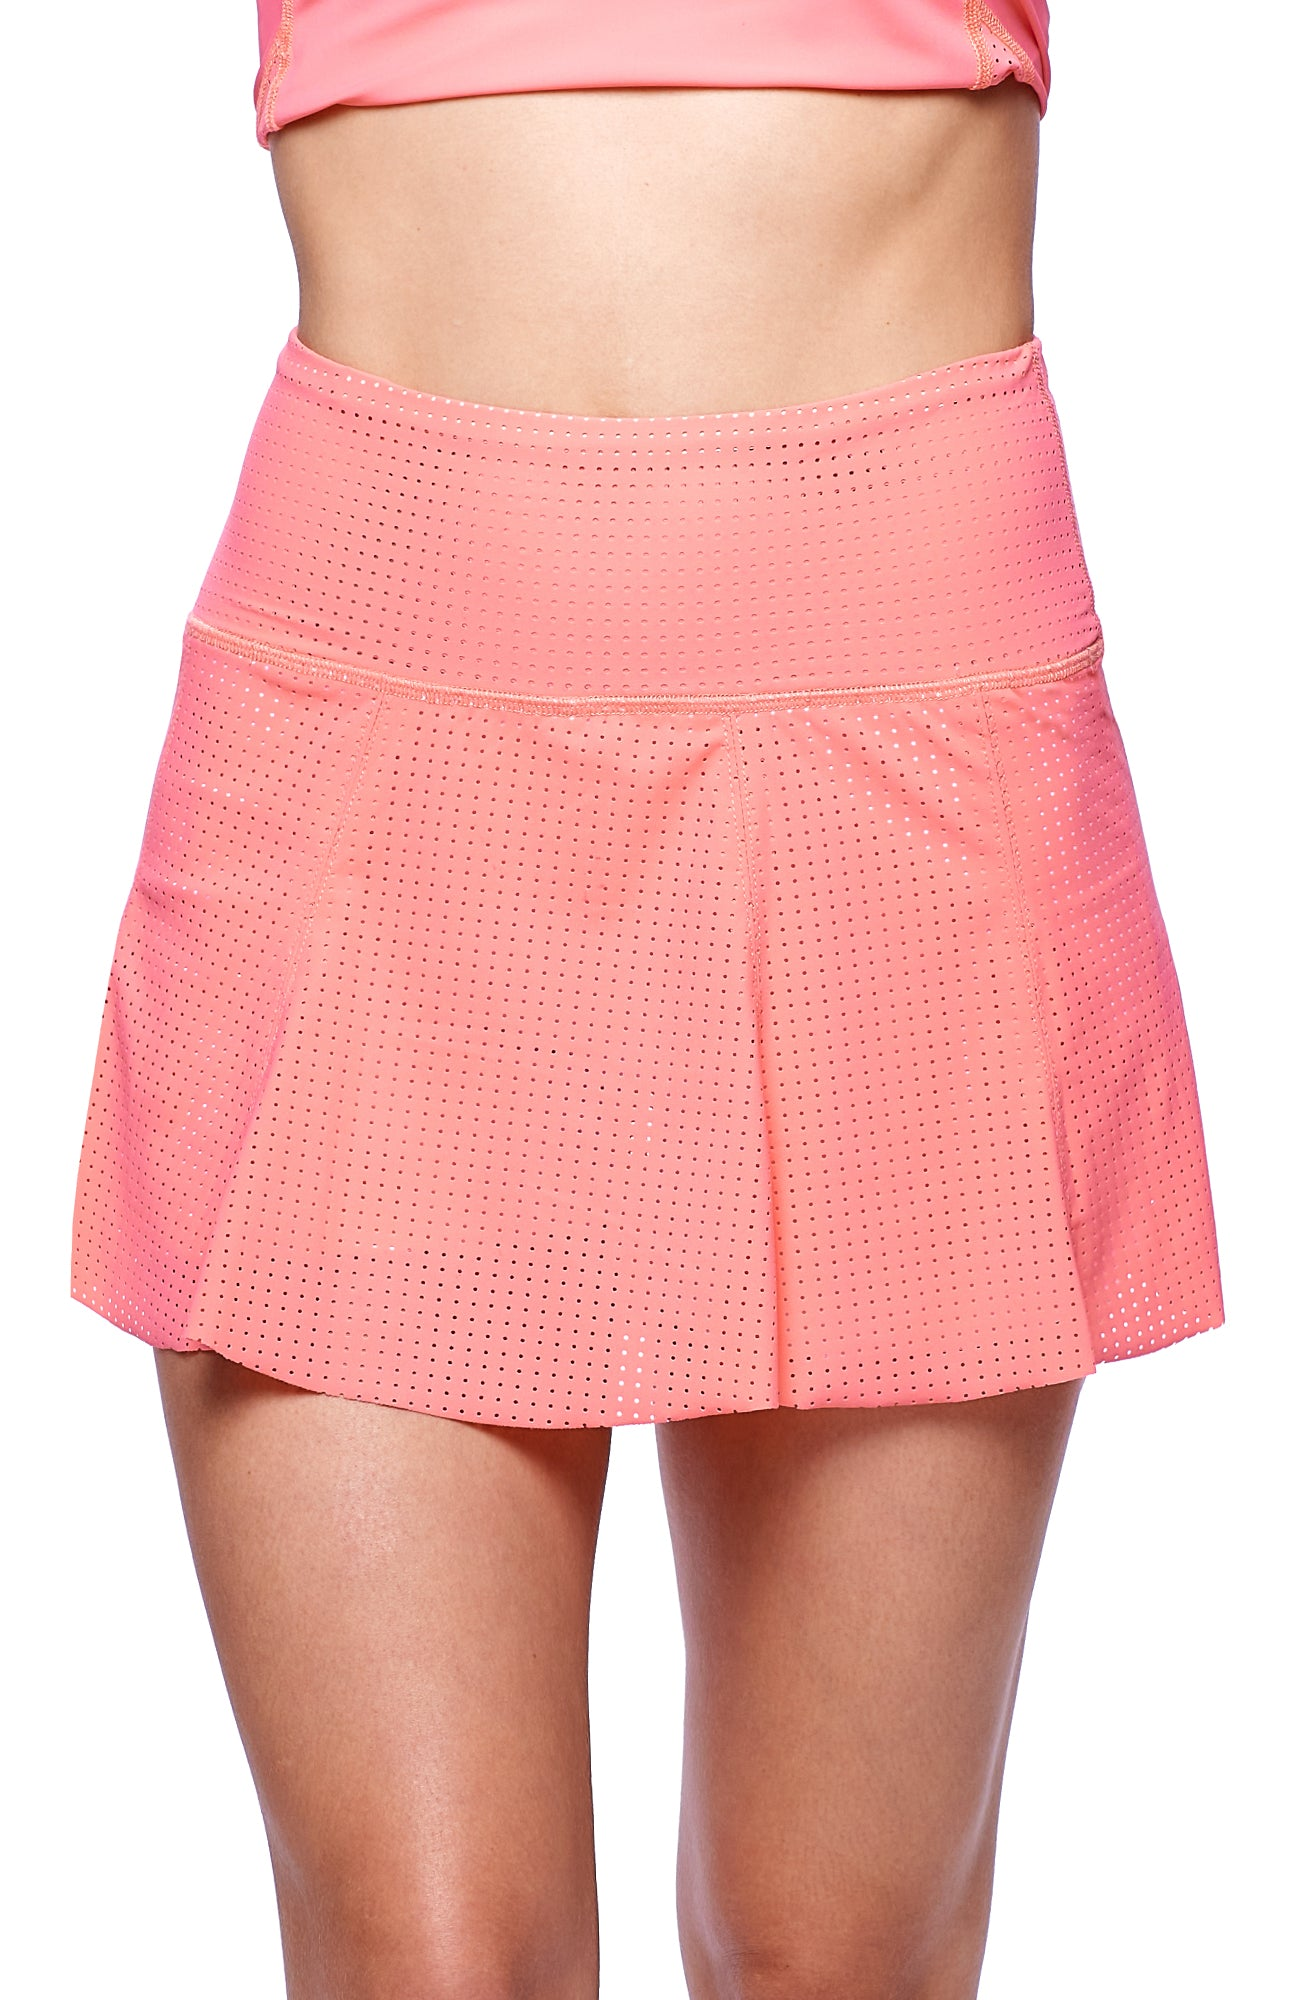 Pink color Perfect Swing skirt Ideal for tennis outfits women